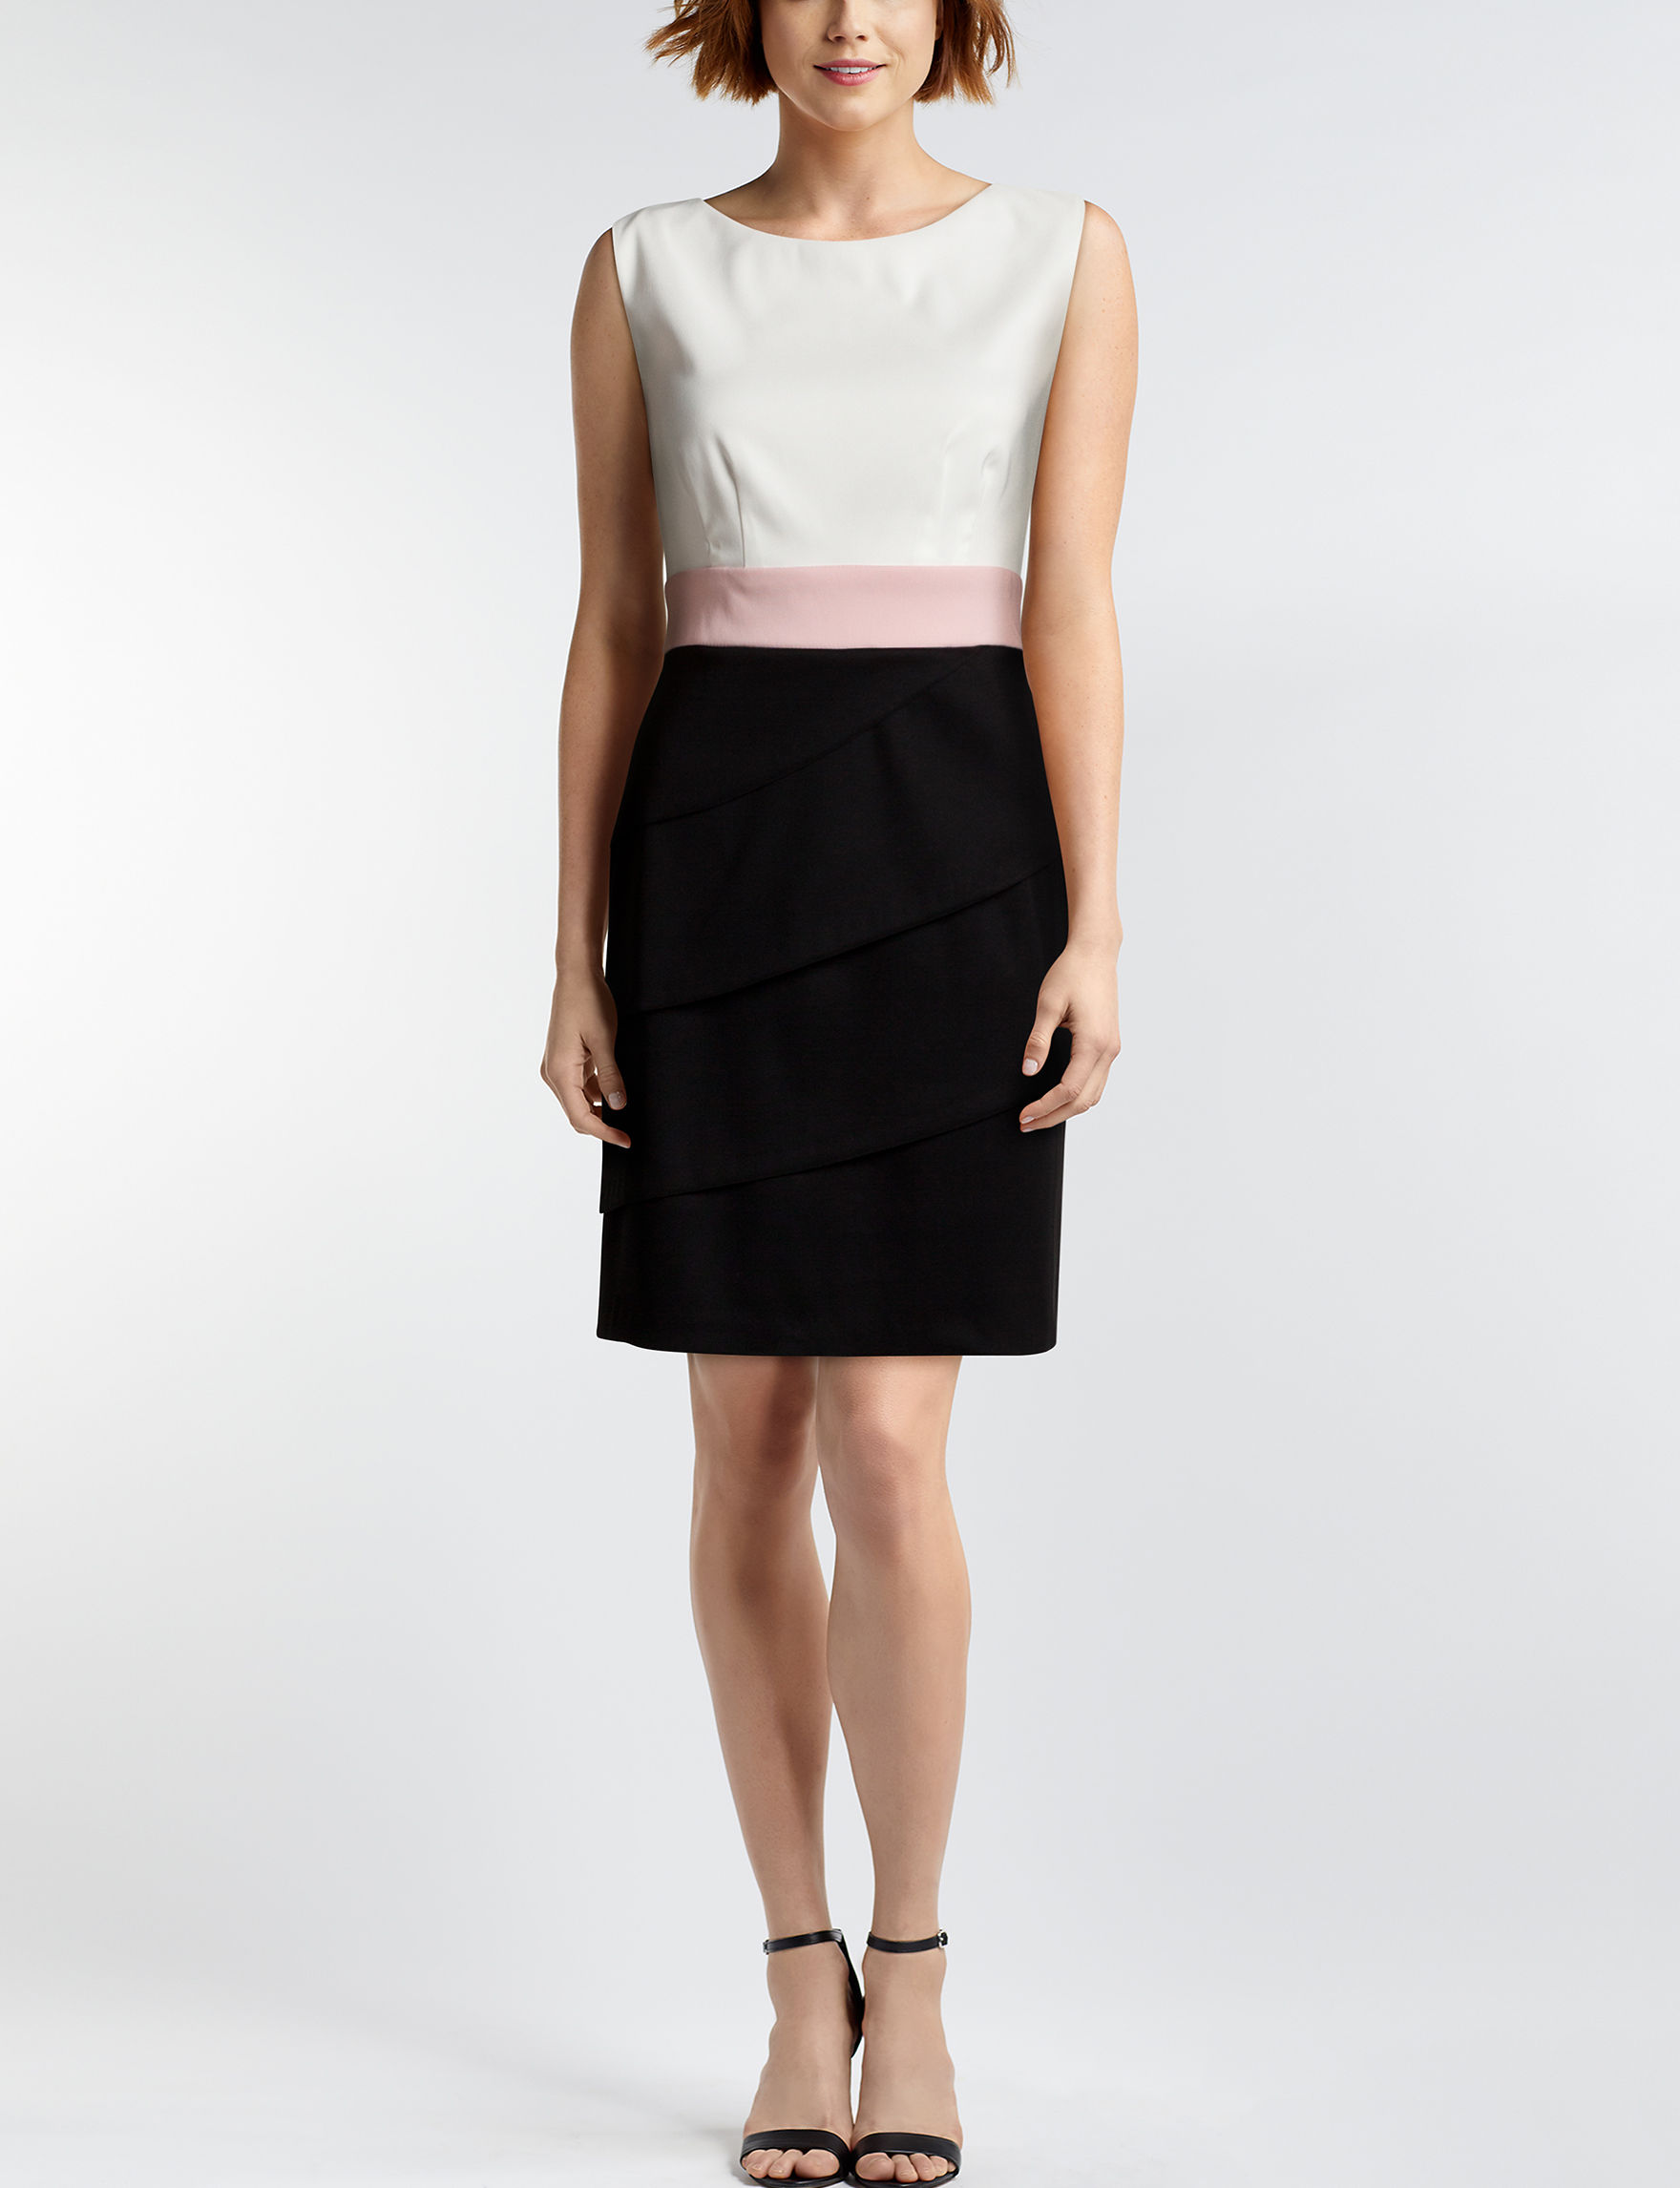 Connected Black White Everyday & Casual Sheath Dresses